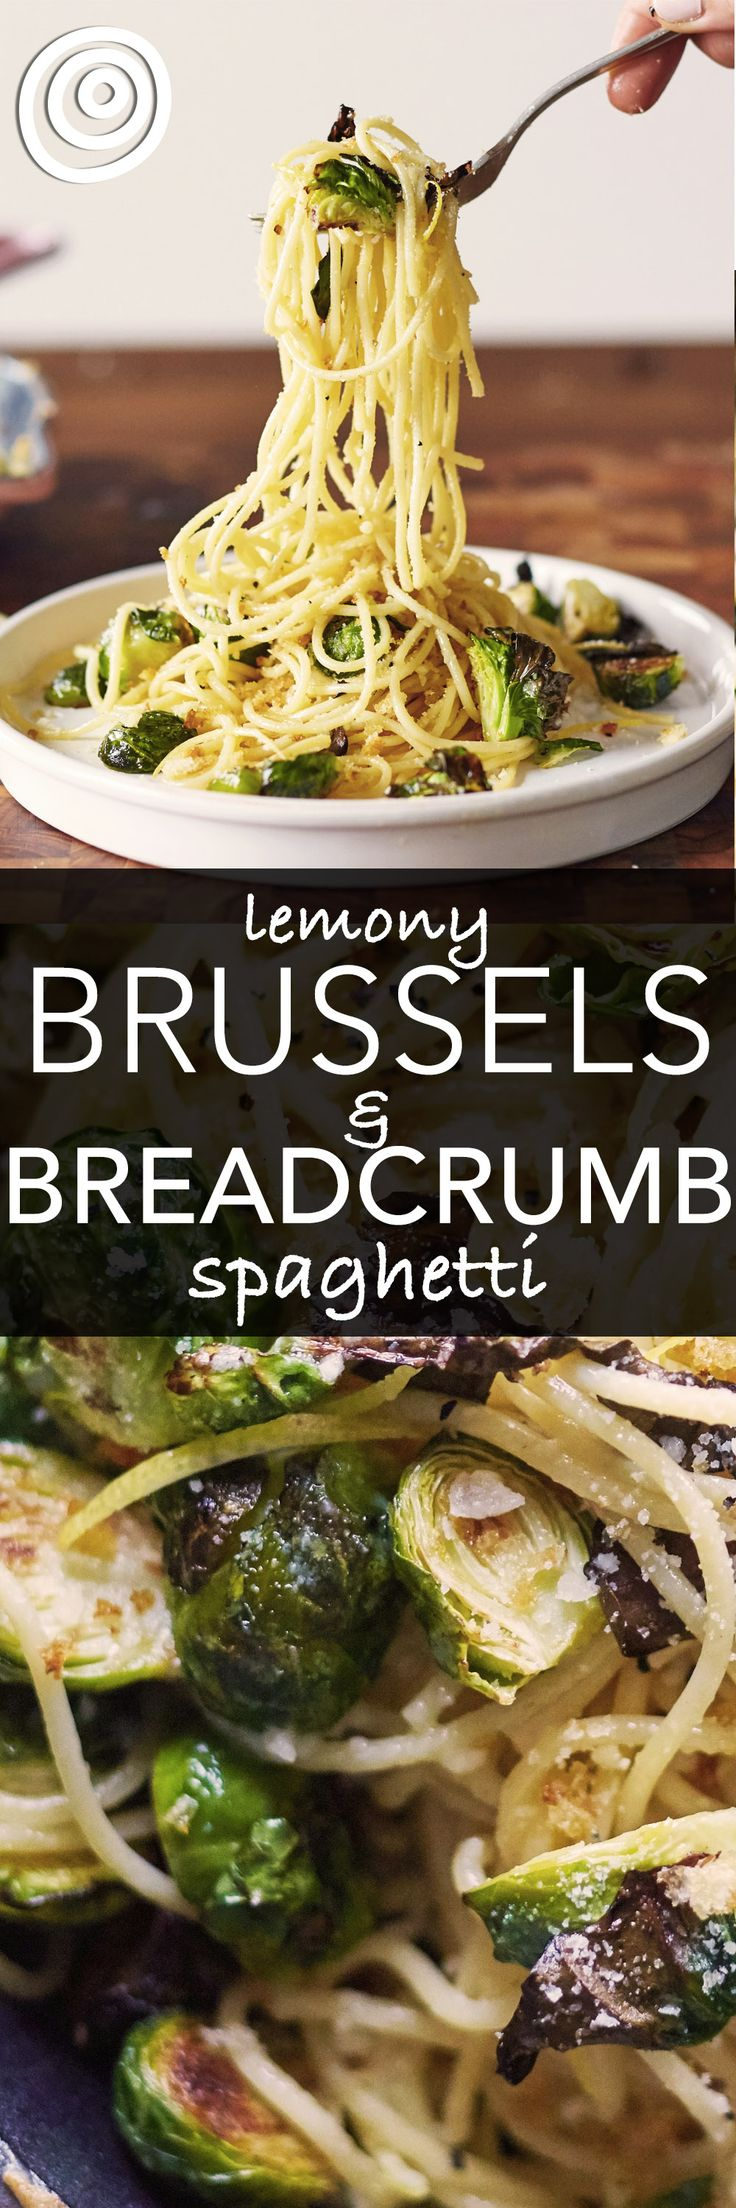 Lemon Brussels Sprouts and Breadcrumb Spaghetti Pasta Recipe. This EASY recipe is one of those recipes that takes advantage of leftovers -- roasted brussel sprouts in this case. Make this quick, easy, CHEAP weeknight meal ASAP! You'll need breadcrumbs, spaghetti, lemons, brussels sprouts, garlic, white wine, parmesan cheese.